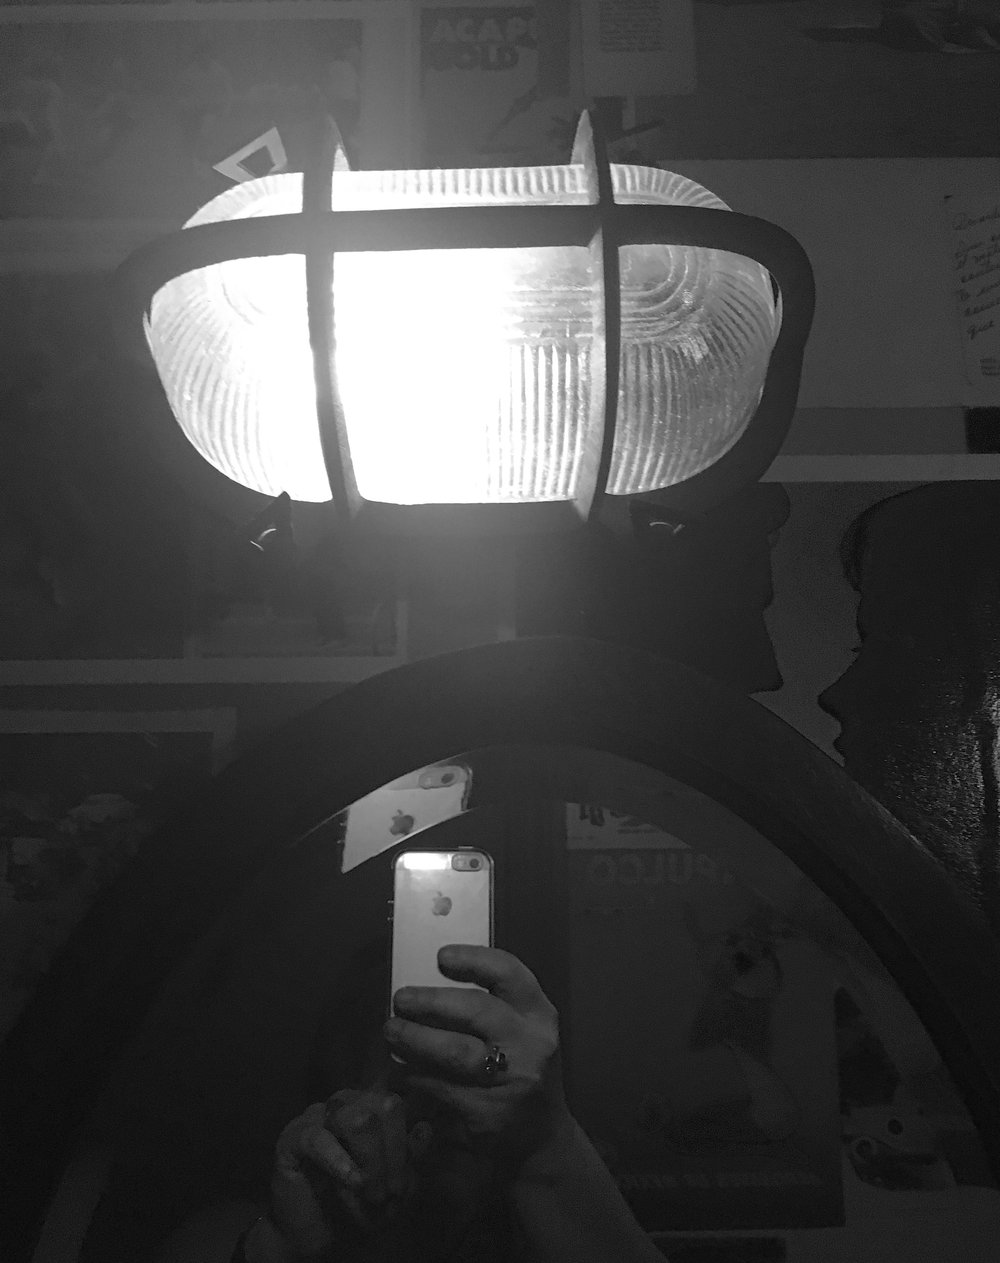 The same style light is above the mirror too